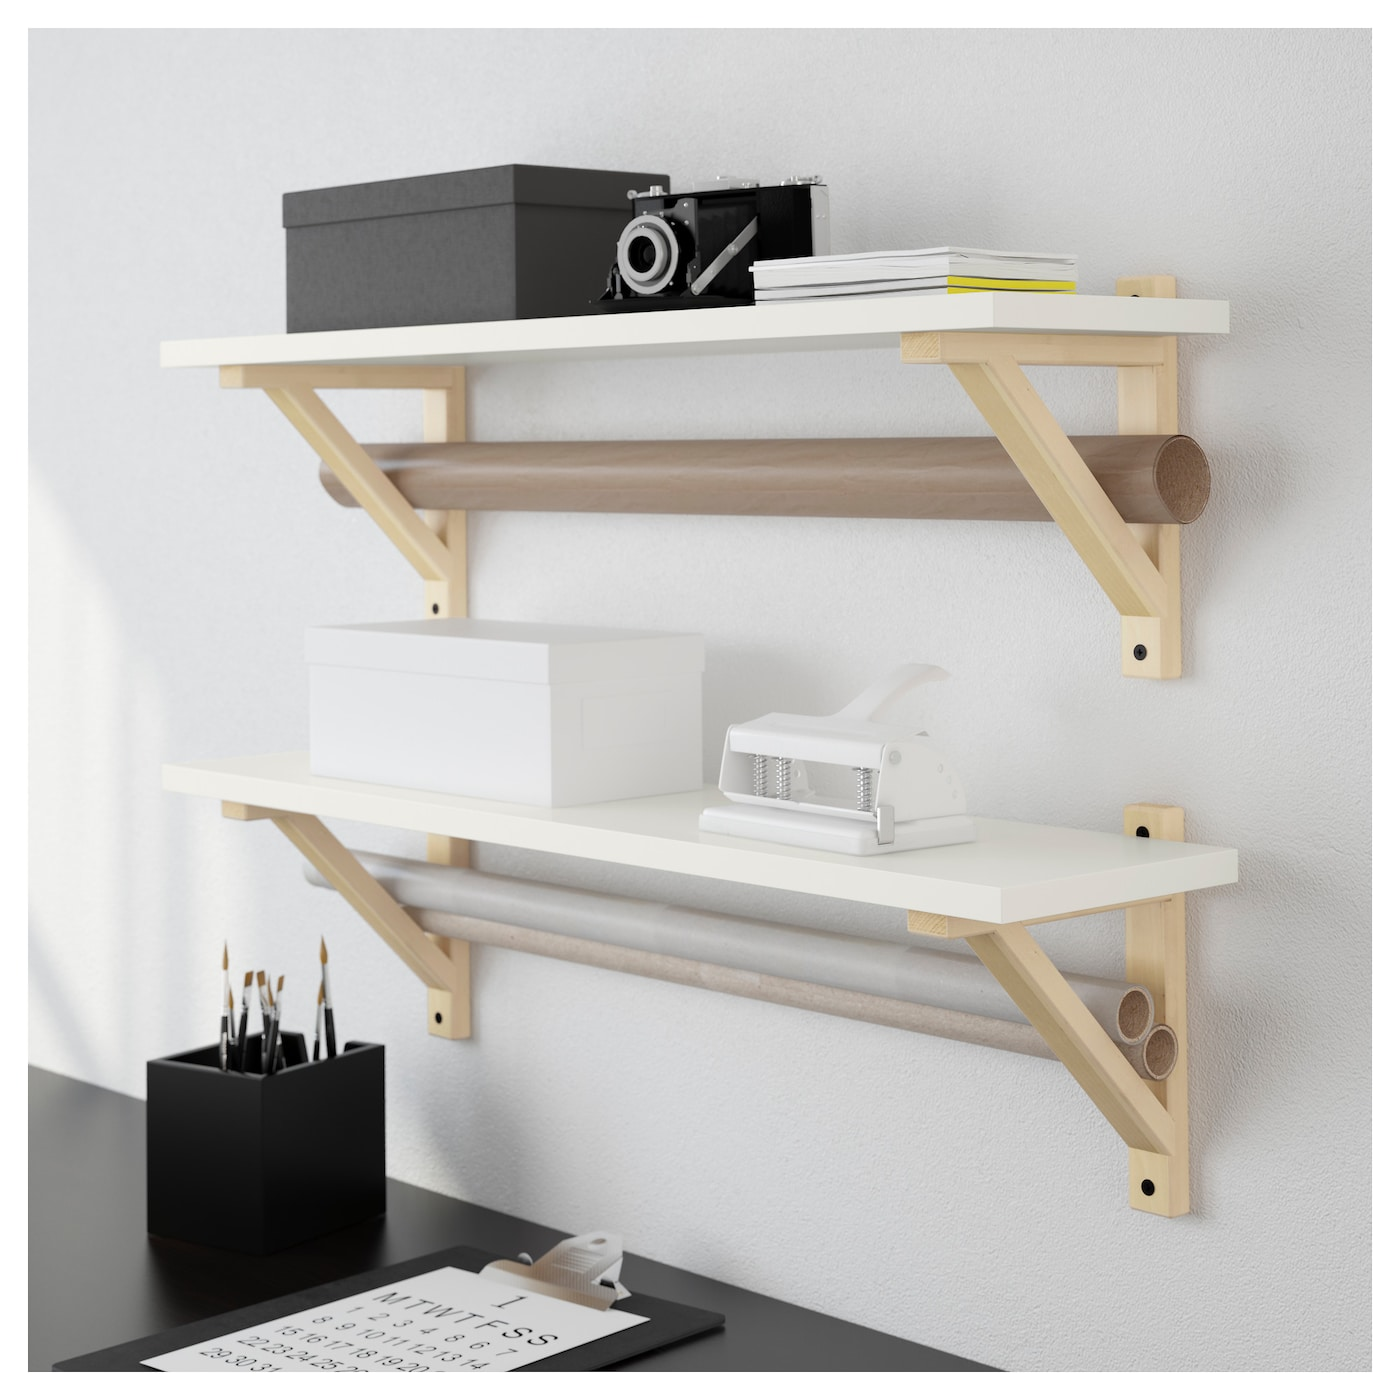 IKEA EKBY ÖSTEN shelf